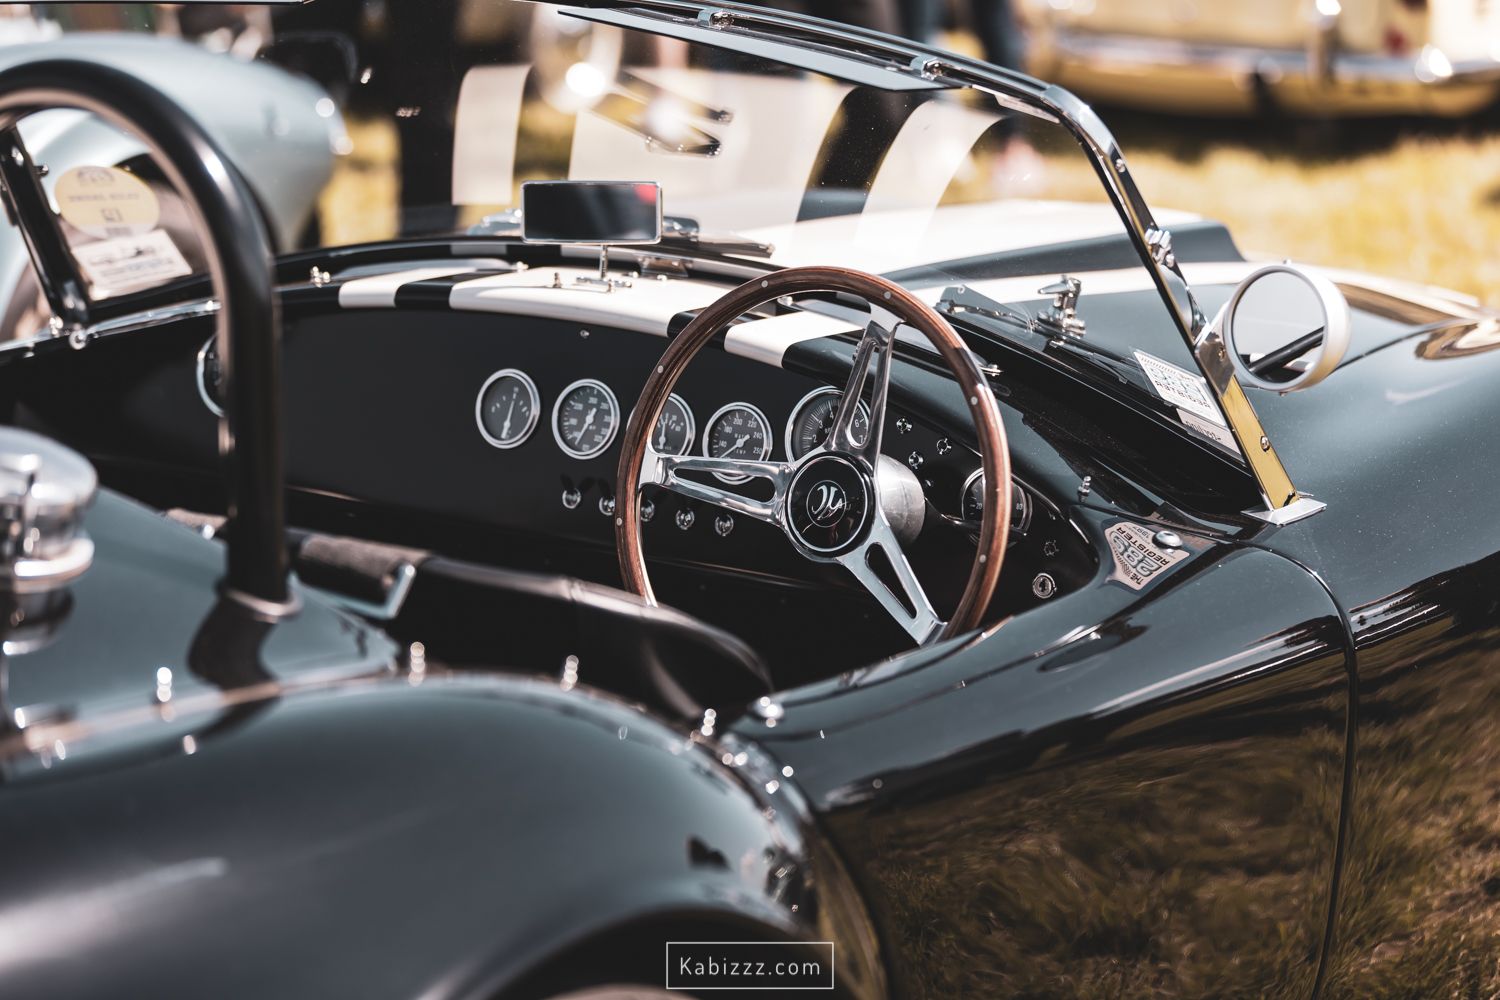 Kabizzz_Photography_Stirling_District_Classic _cars-84.jpg